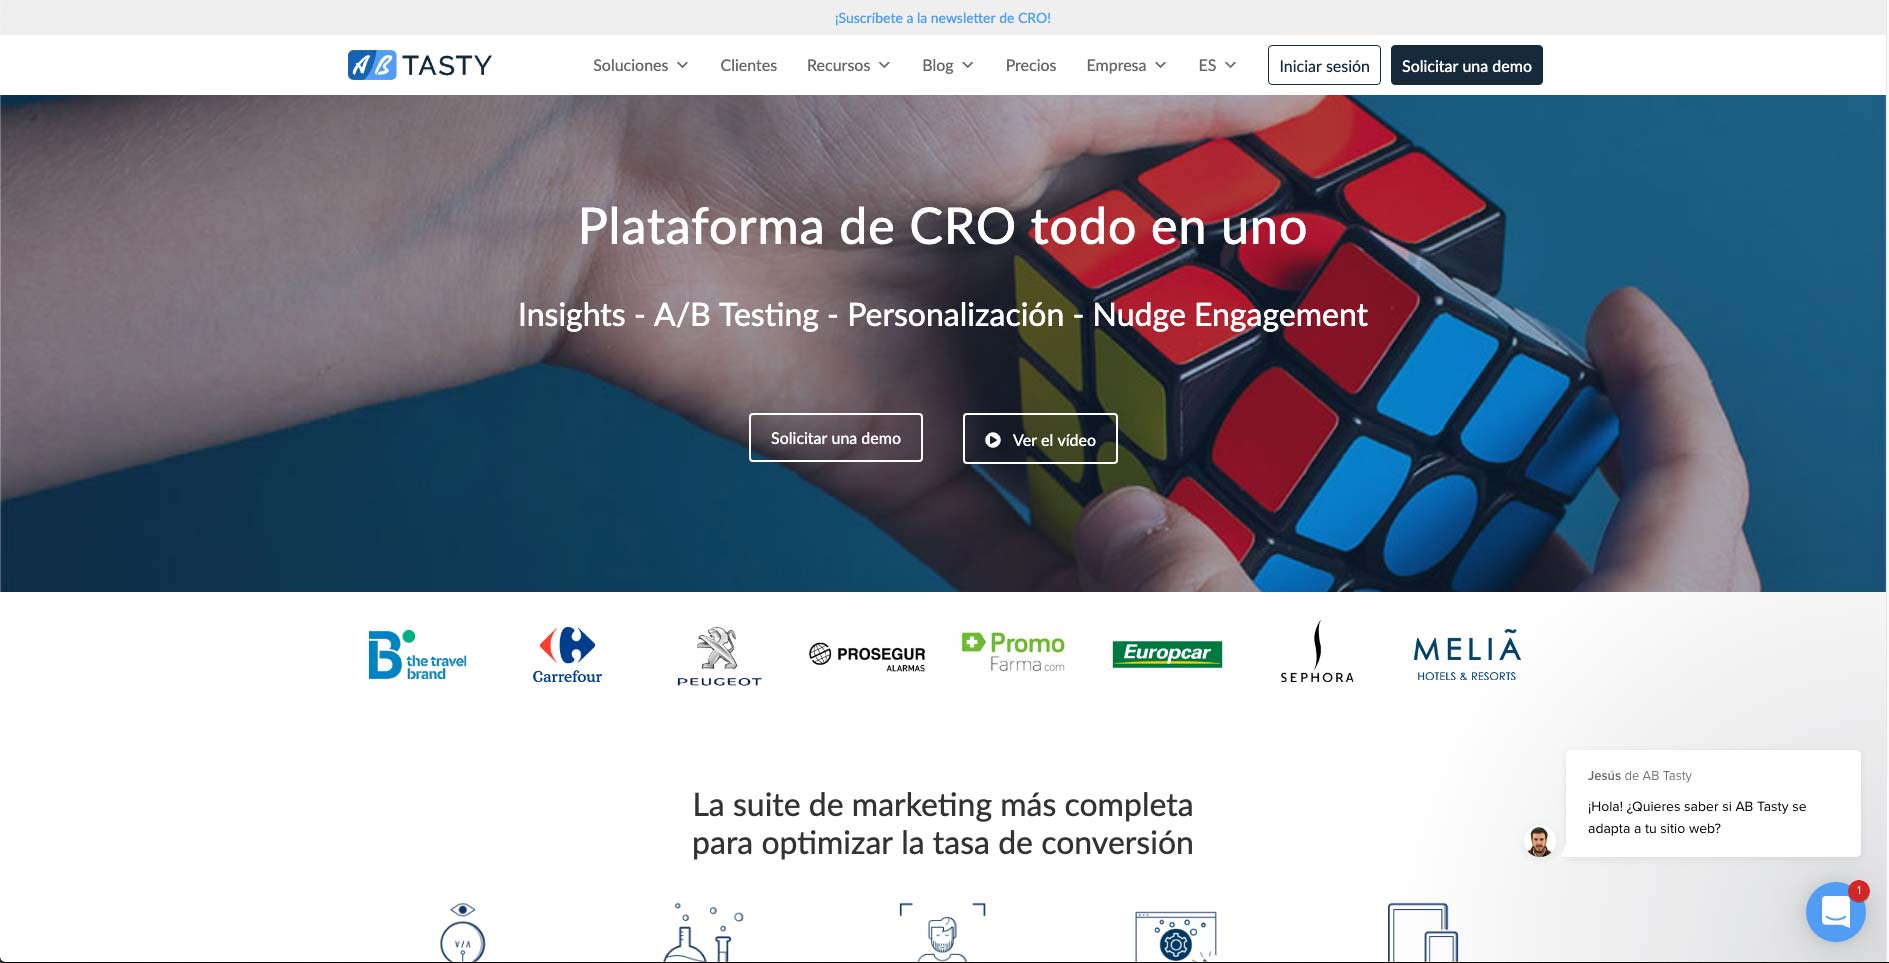 Página web de AB Tasty  optimizada para dispositivos de escritorio.